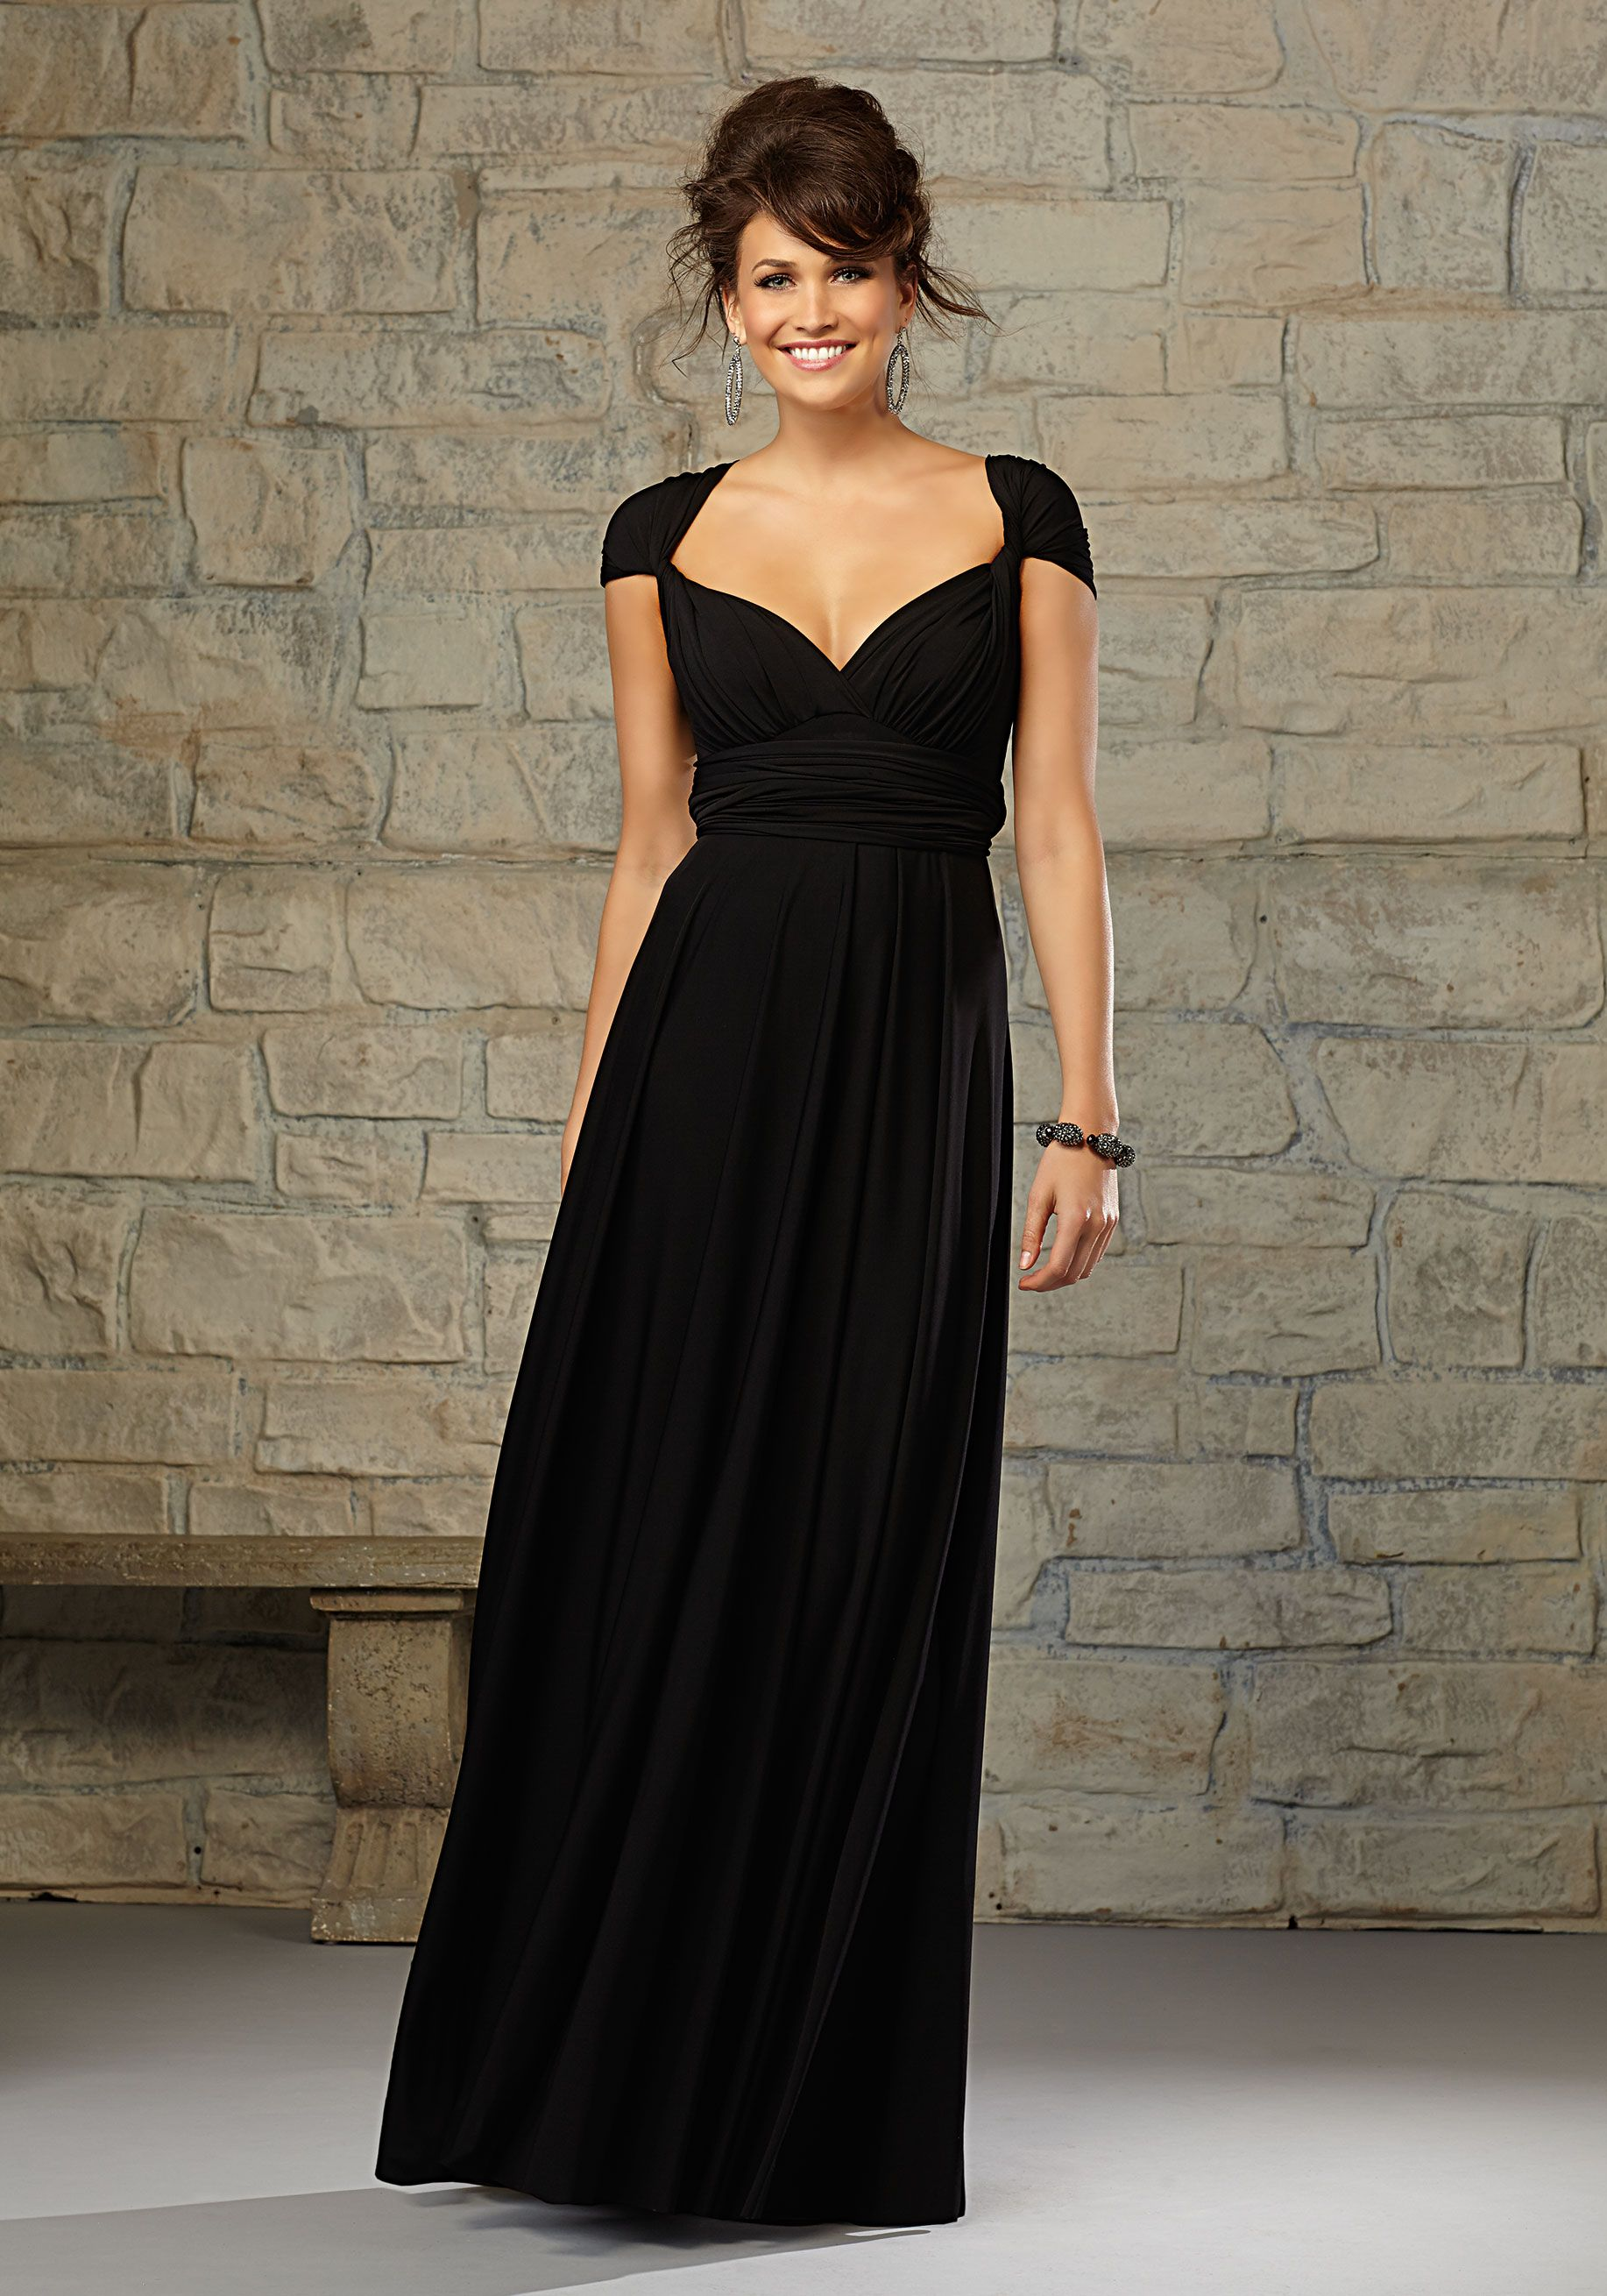 Jersey bridesmaid dress with adaptable straps designed by madeline jersey bridesmaid dress with adaptable straps designed by madeline gardner shown in black ombrellifo Gallery